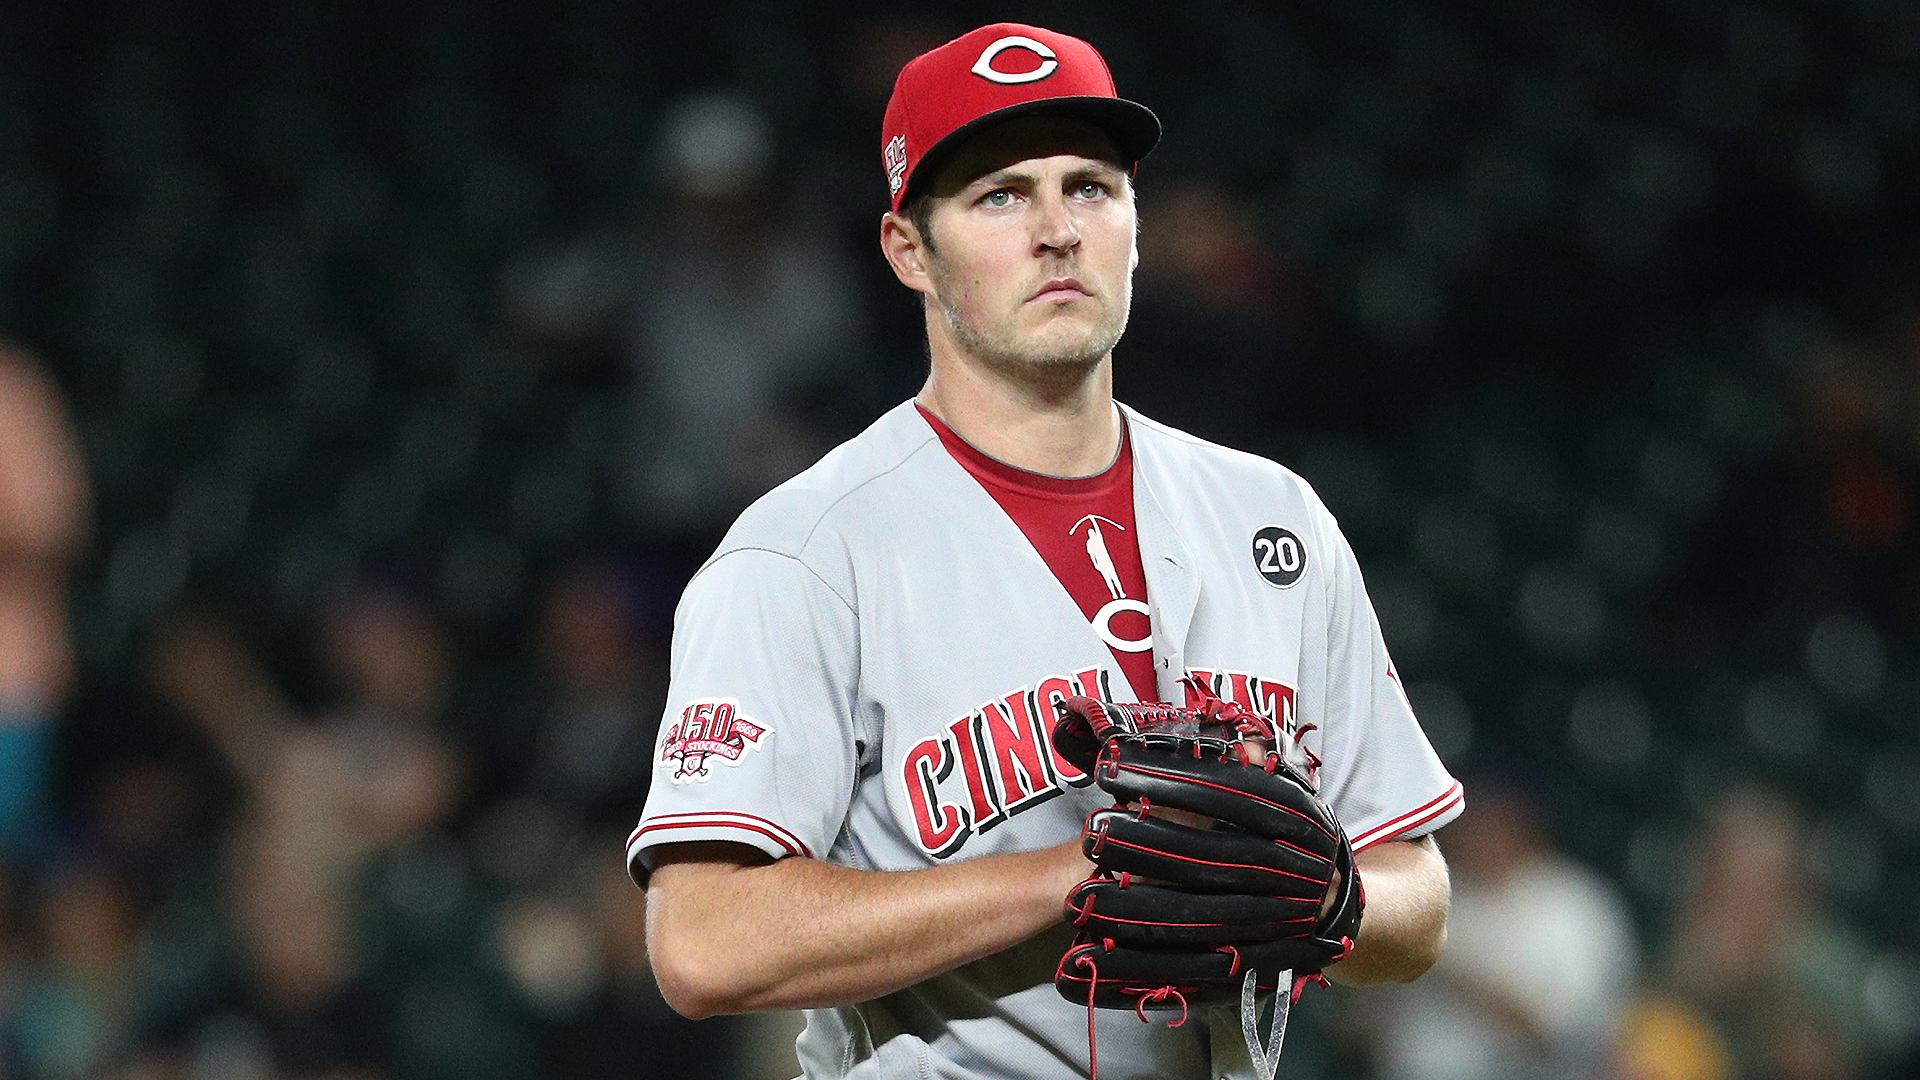 Trevor Bauer blasts MLB's 'amateur' approach to postponing games: 'Figure it the f— out'